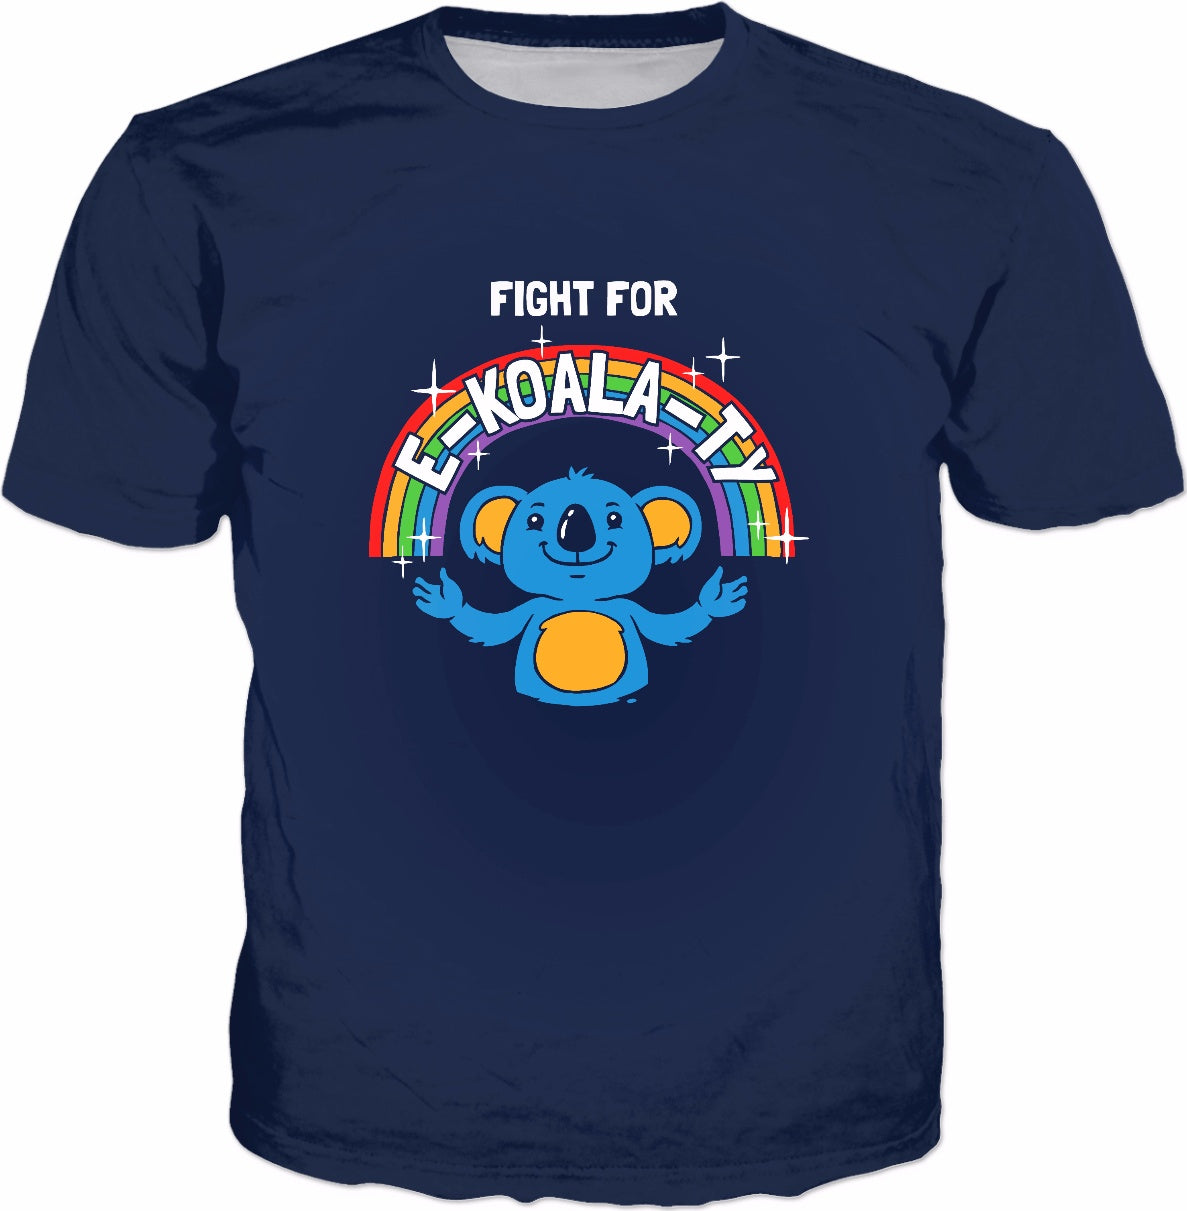 Fight For E-Koala-ty T-Shirt - Cute Koala Bear Equality Pun